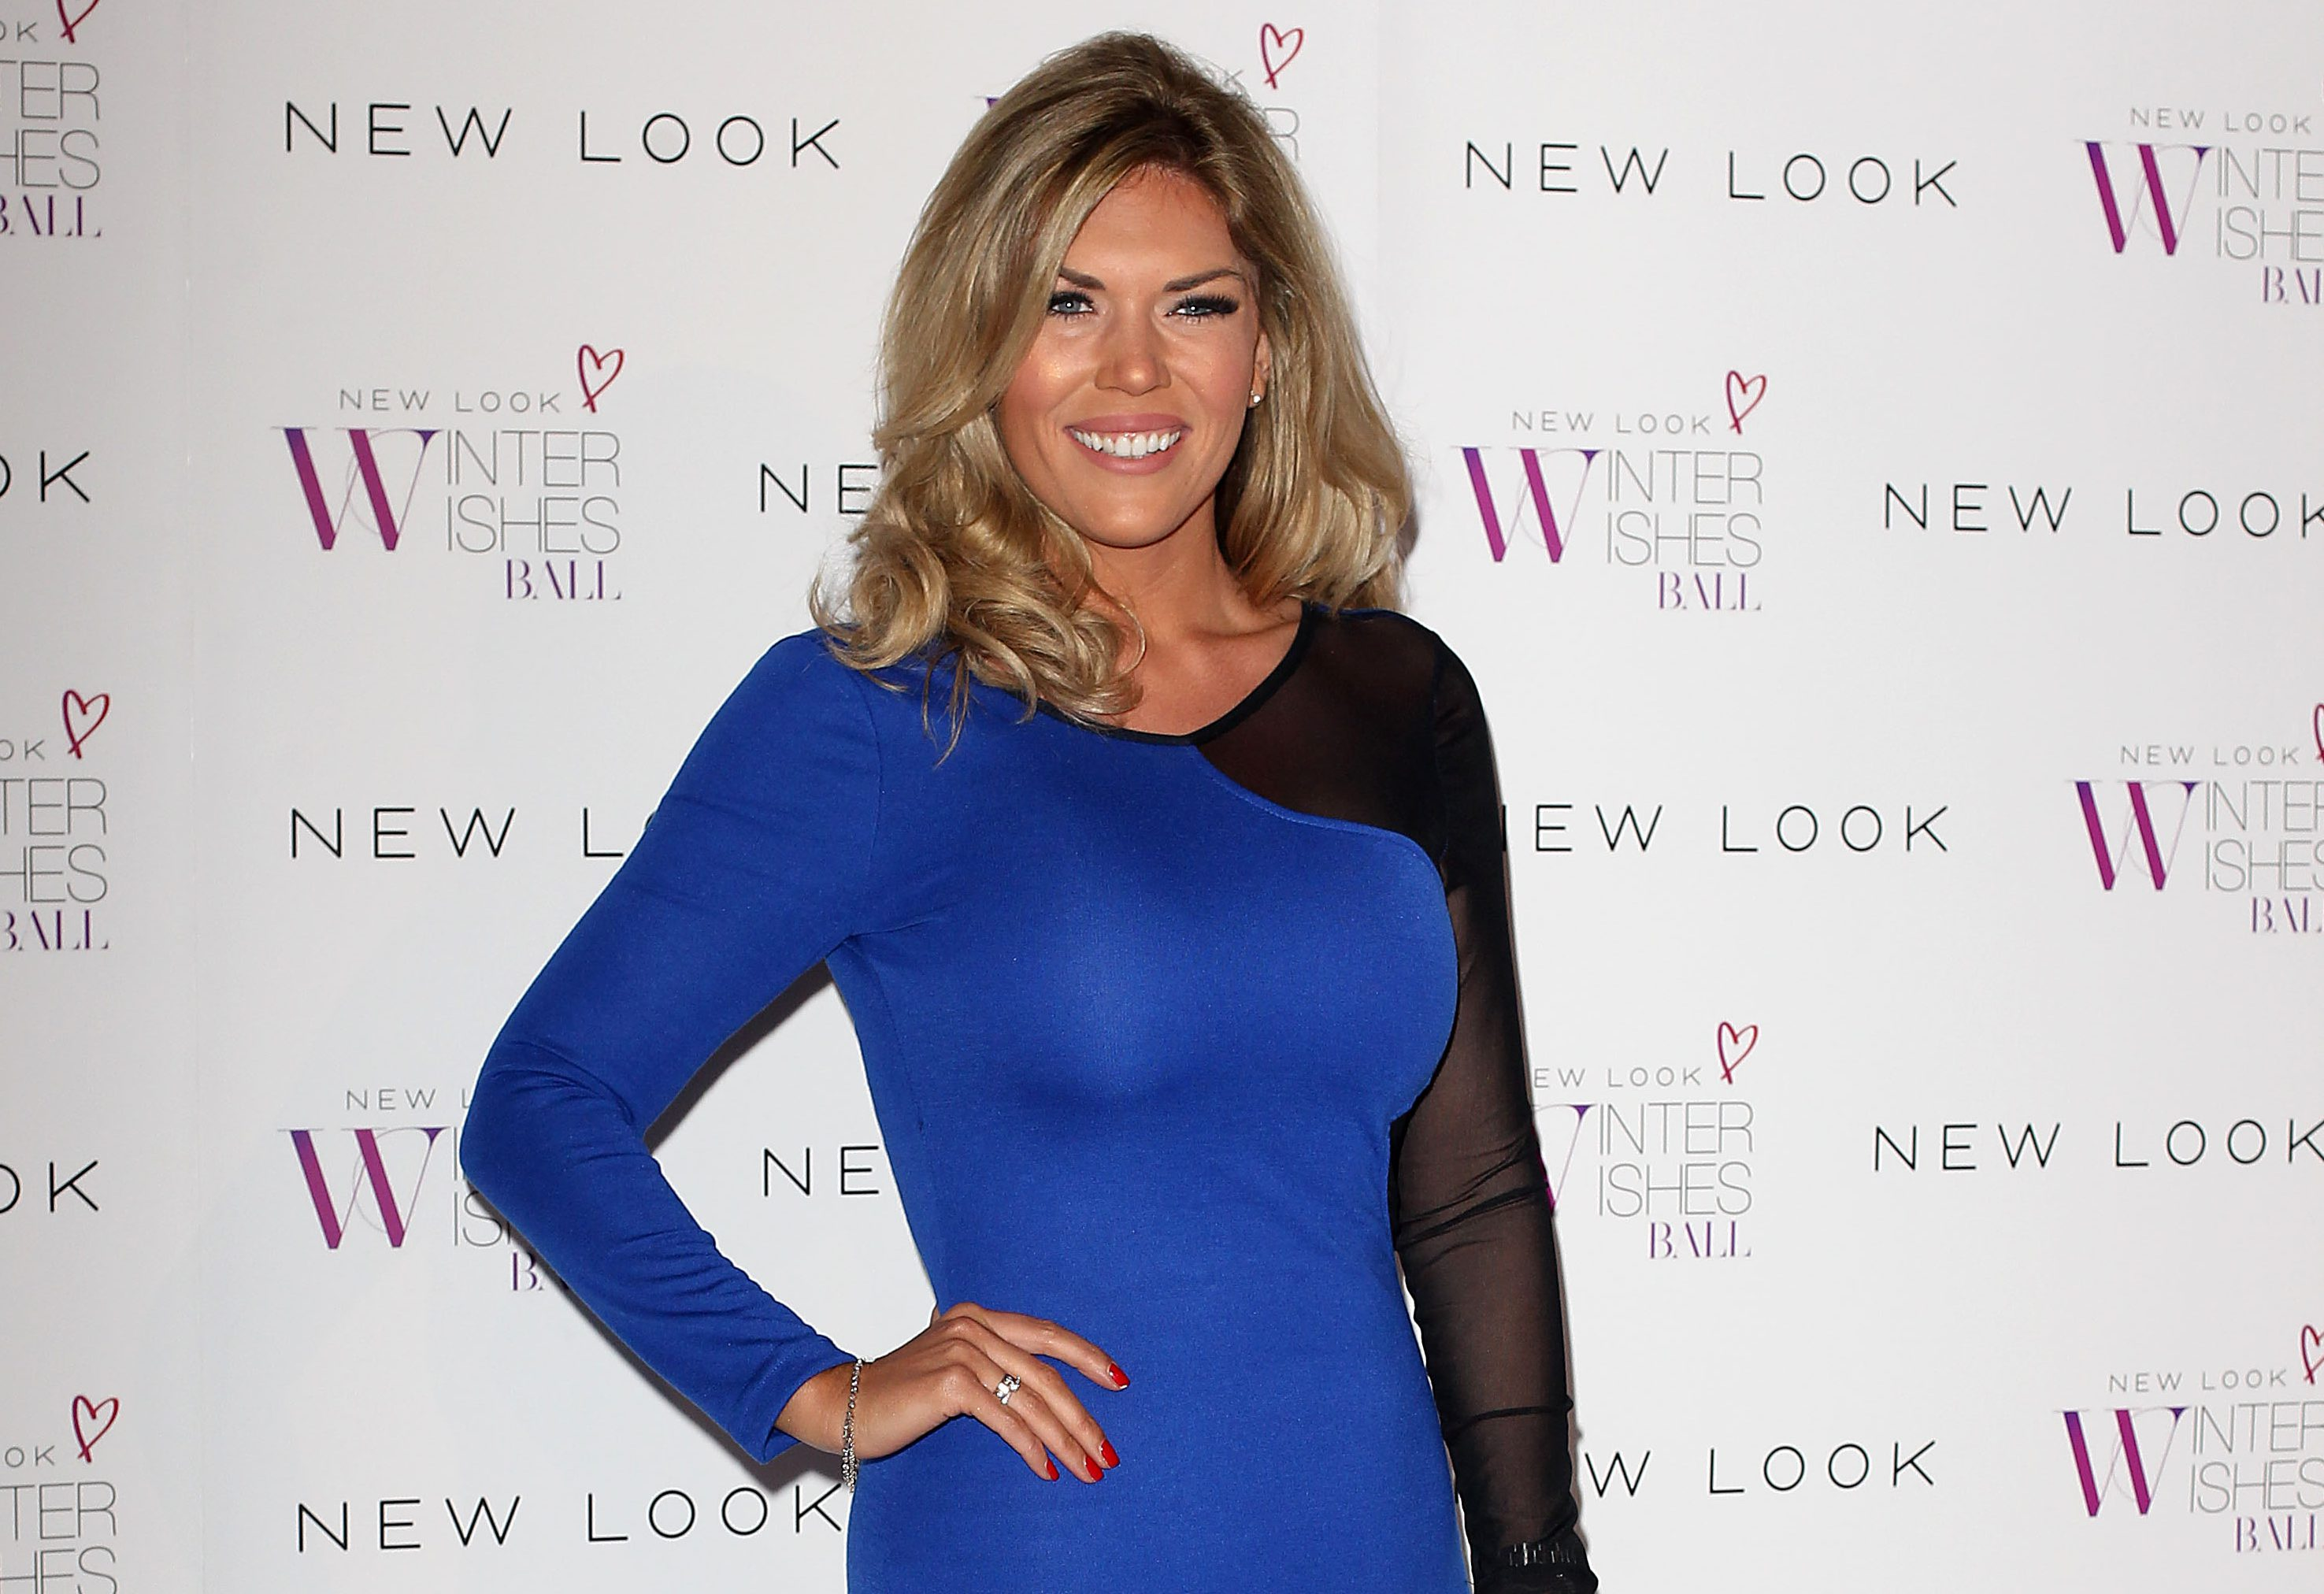 LONDON, UNITED KINGDOM - NOVEMBER 06: Frankie Essex attends the New Look Winter Wishes Charity Ball at Battersea Evolution on November 6, 2013 in London, England. (Photo by Danny Martindale/WireImage)